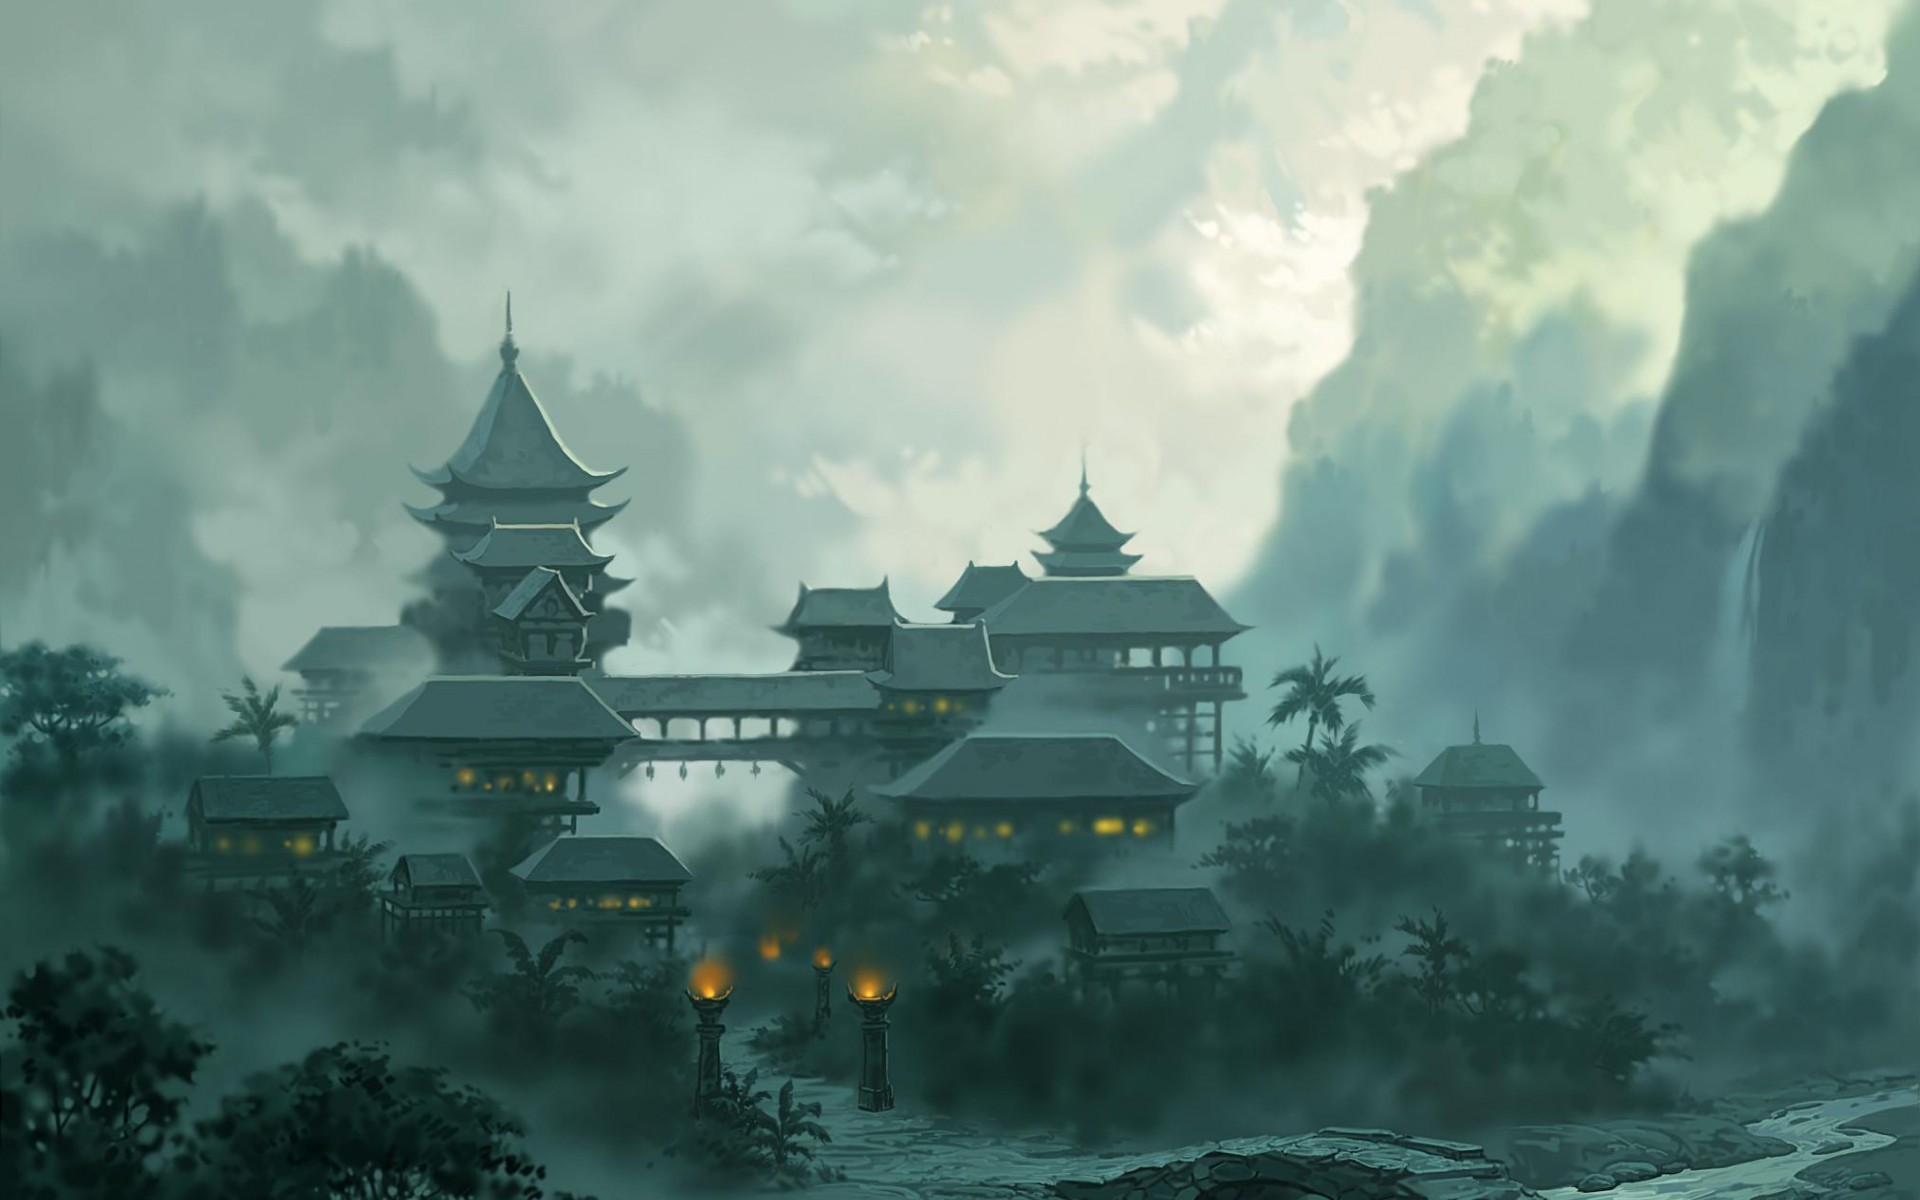 Chinese Mountains by Juhupainting on deviantART | D&D and Fantasy Settings  | Pinterest | Chinese mountains, Matte painting and deviantART